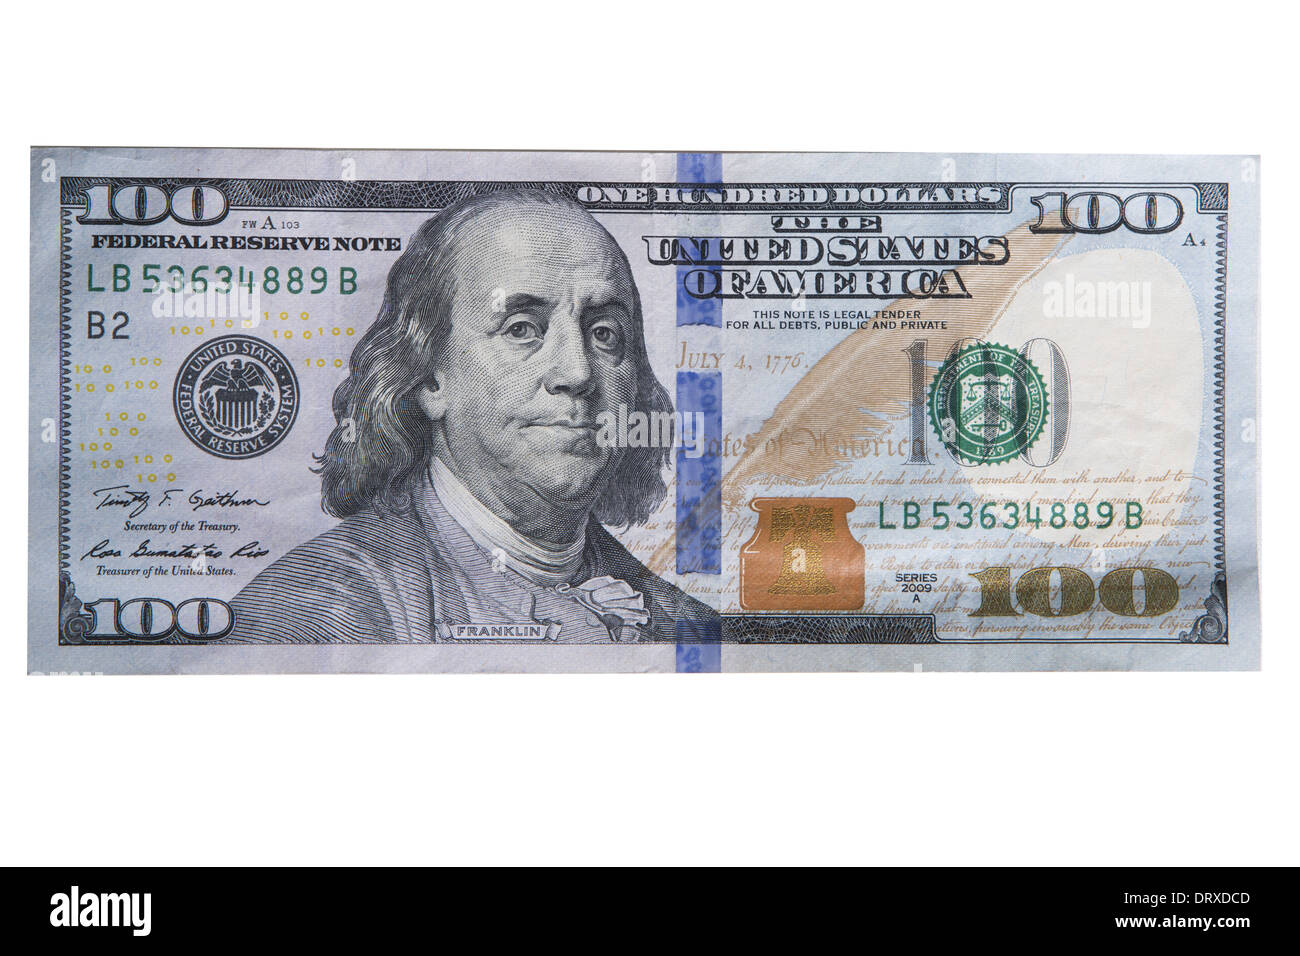 New one hundred dollar bill isolated - Stock Image